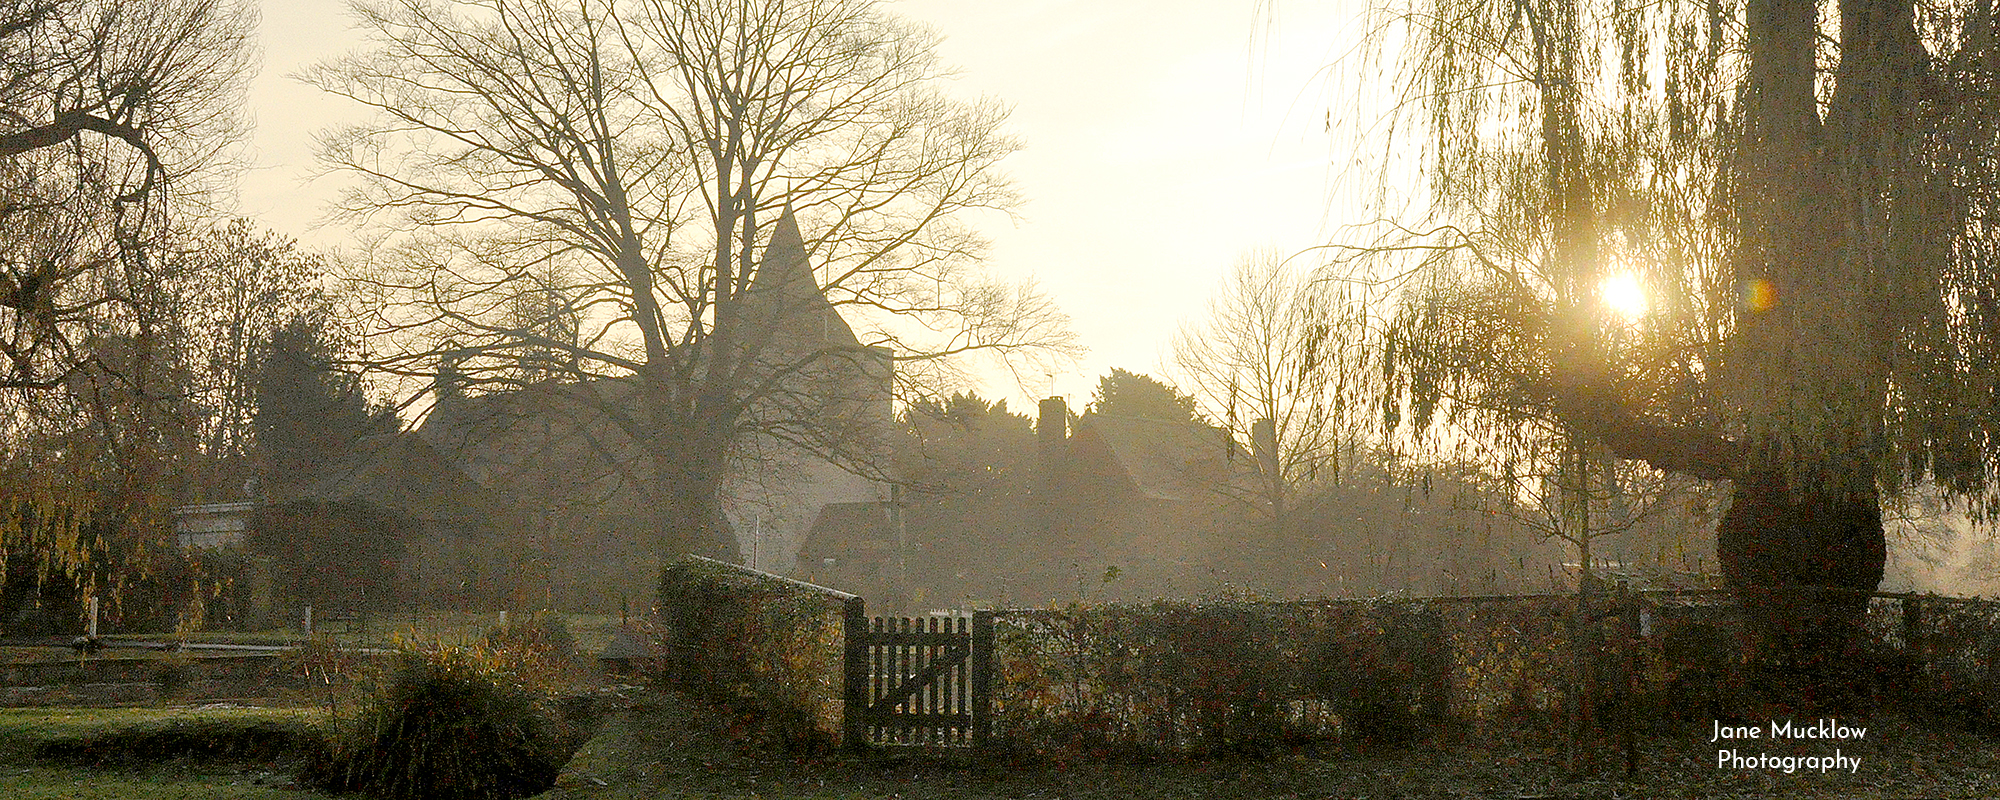 Photo by Jane Mucklow of Otford pond with a winter sunrise, available as a canvas for your wall